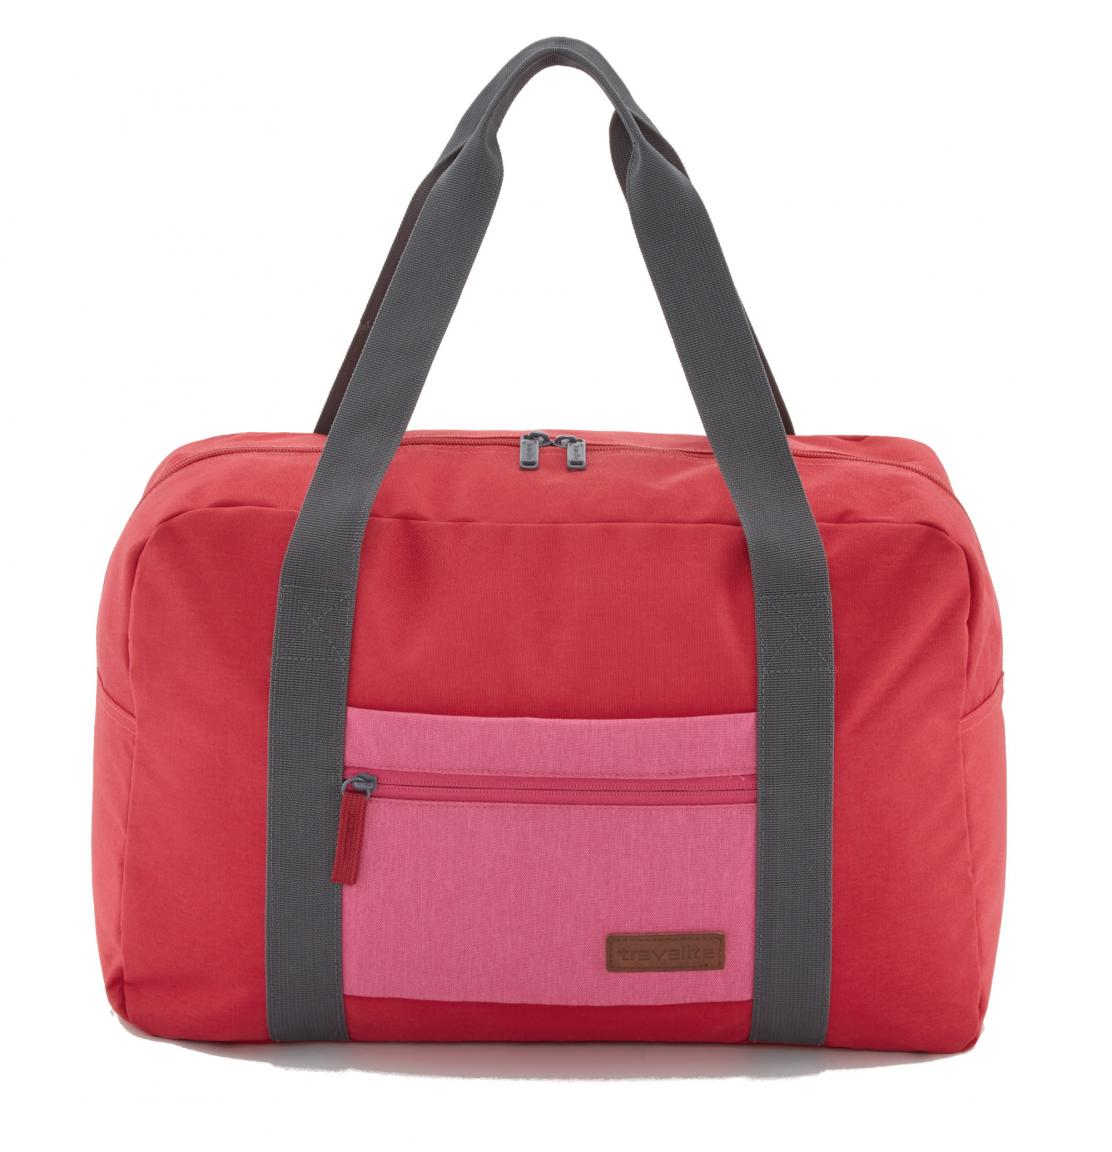 Travelite on board Reisetasche Neopak rot/pink